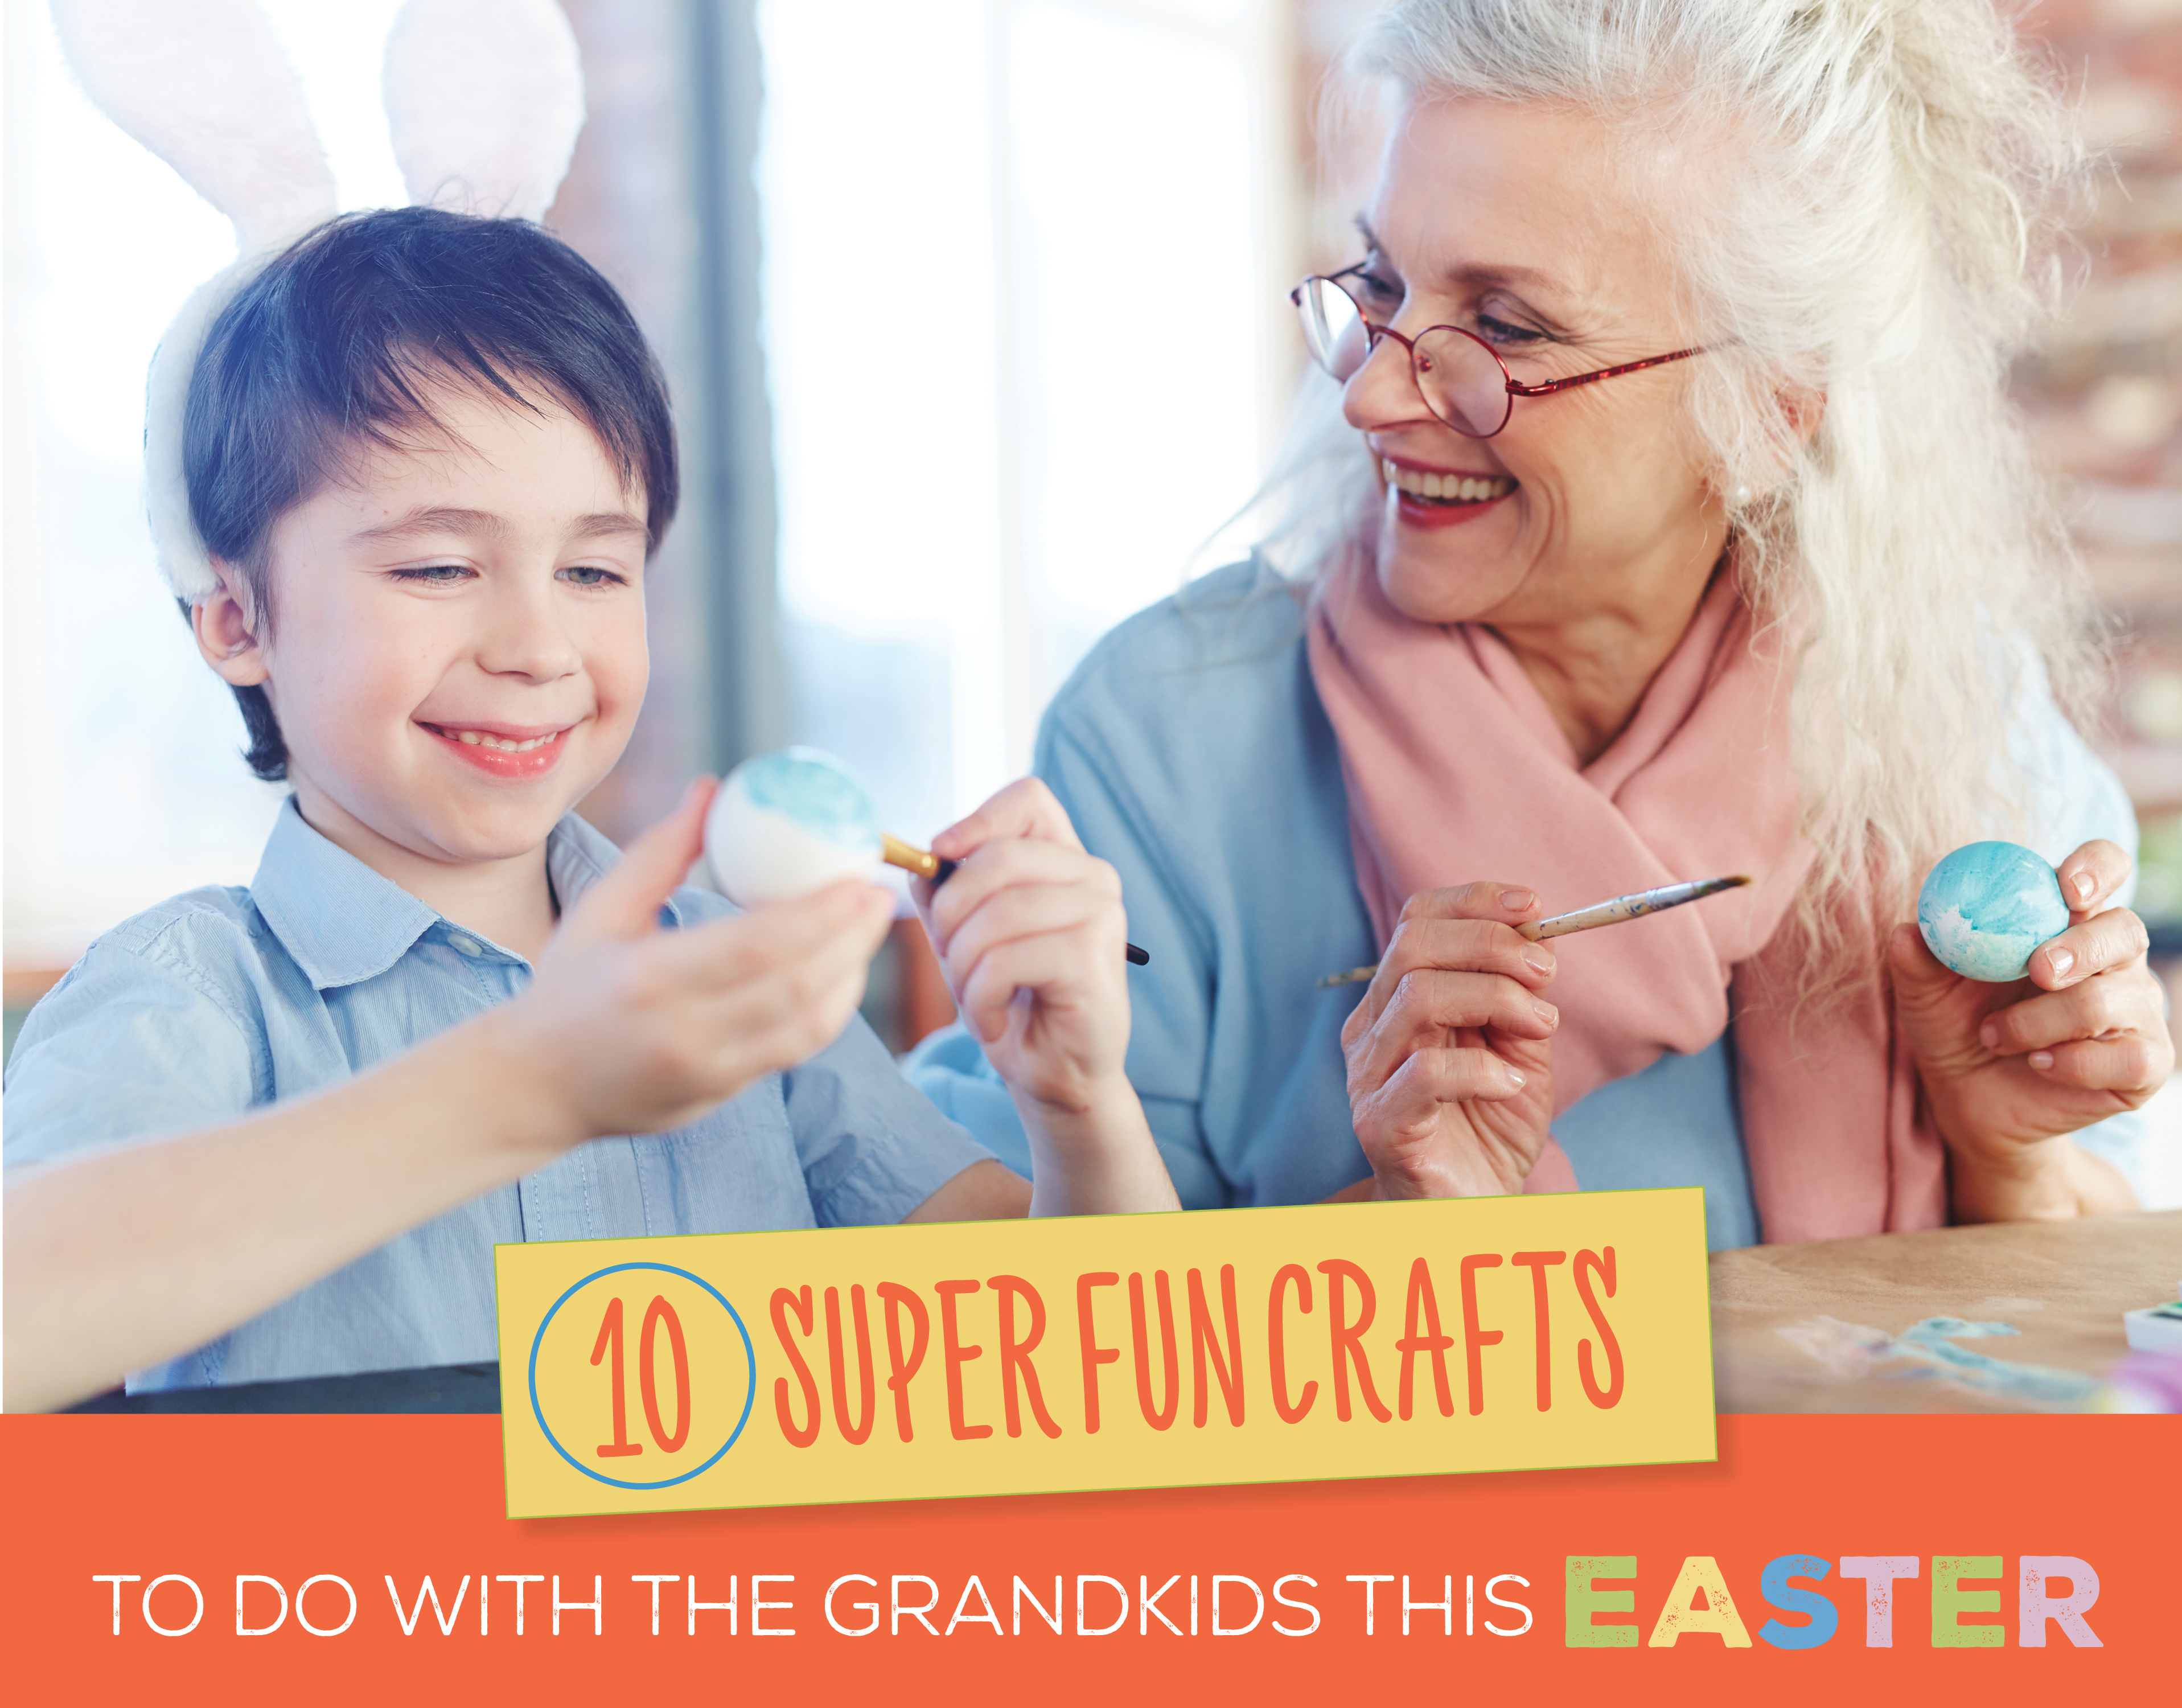 10 Super Fun Crafts to Do With the Grandkids This Easter